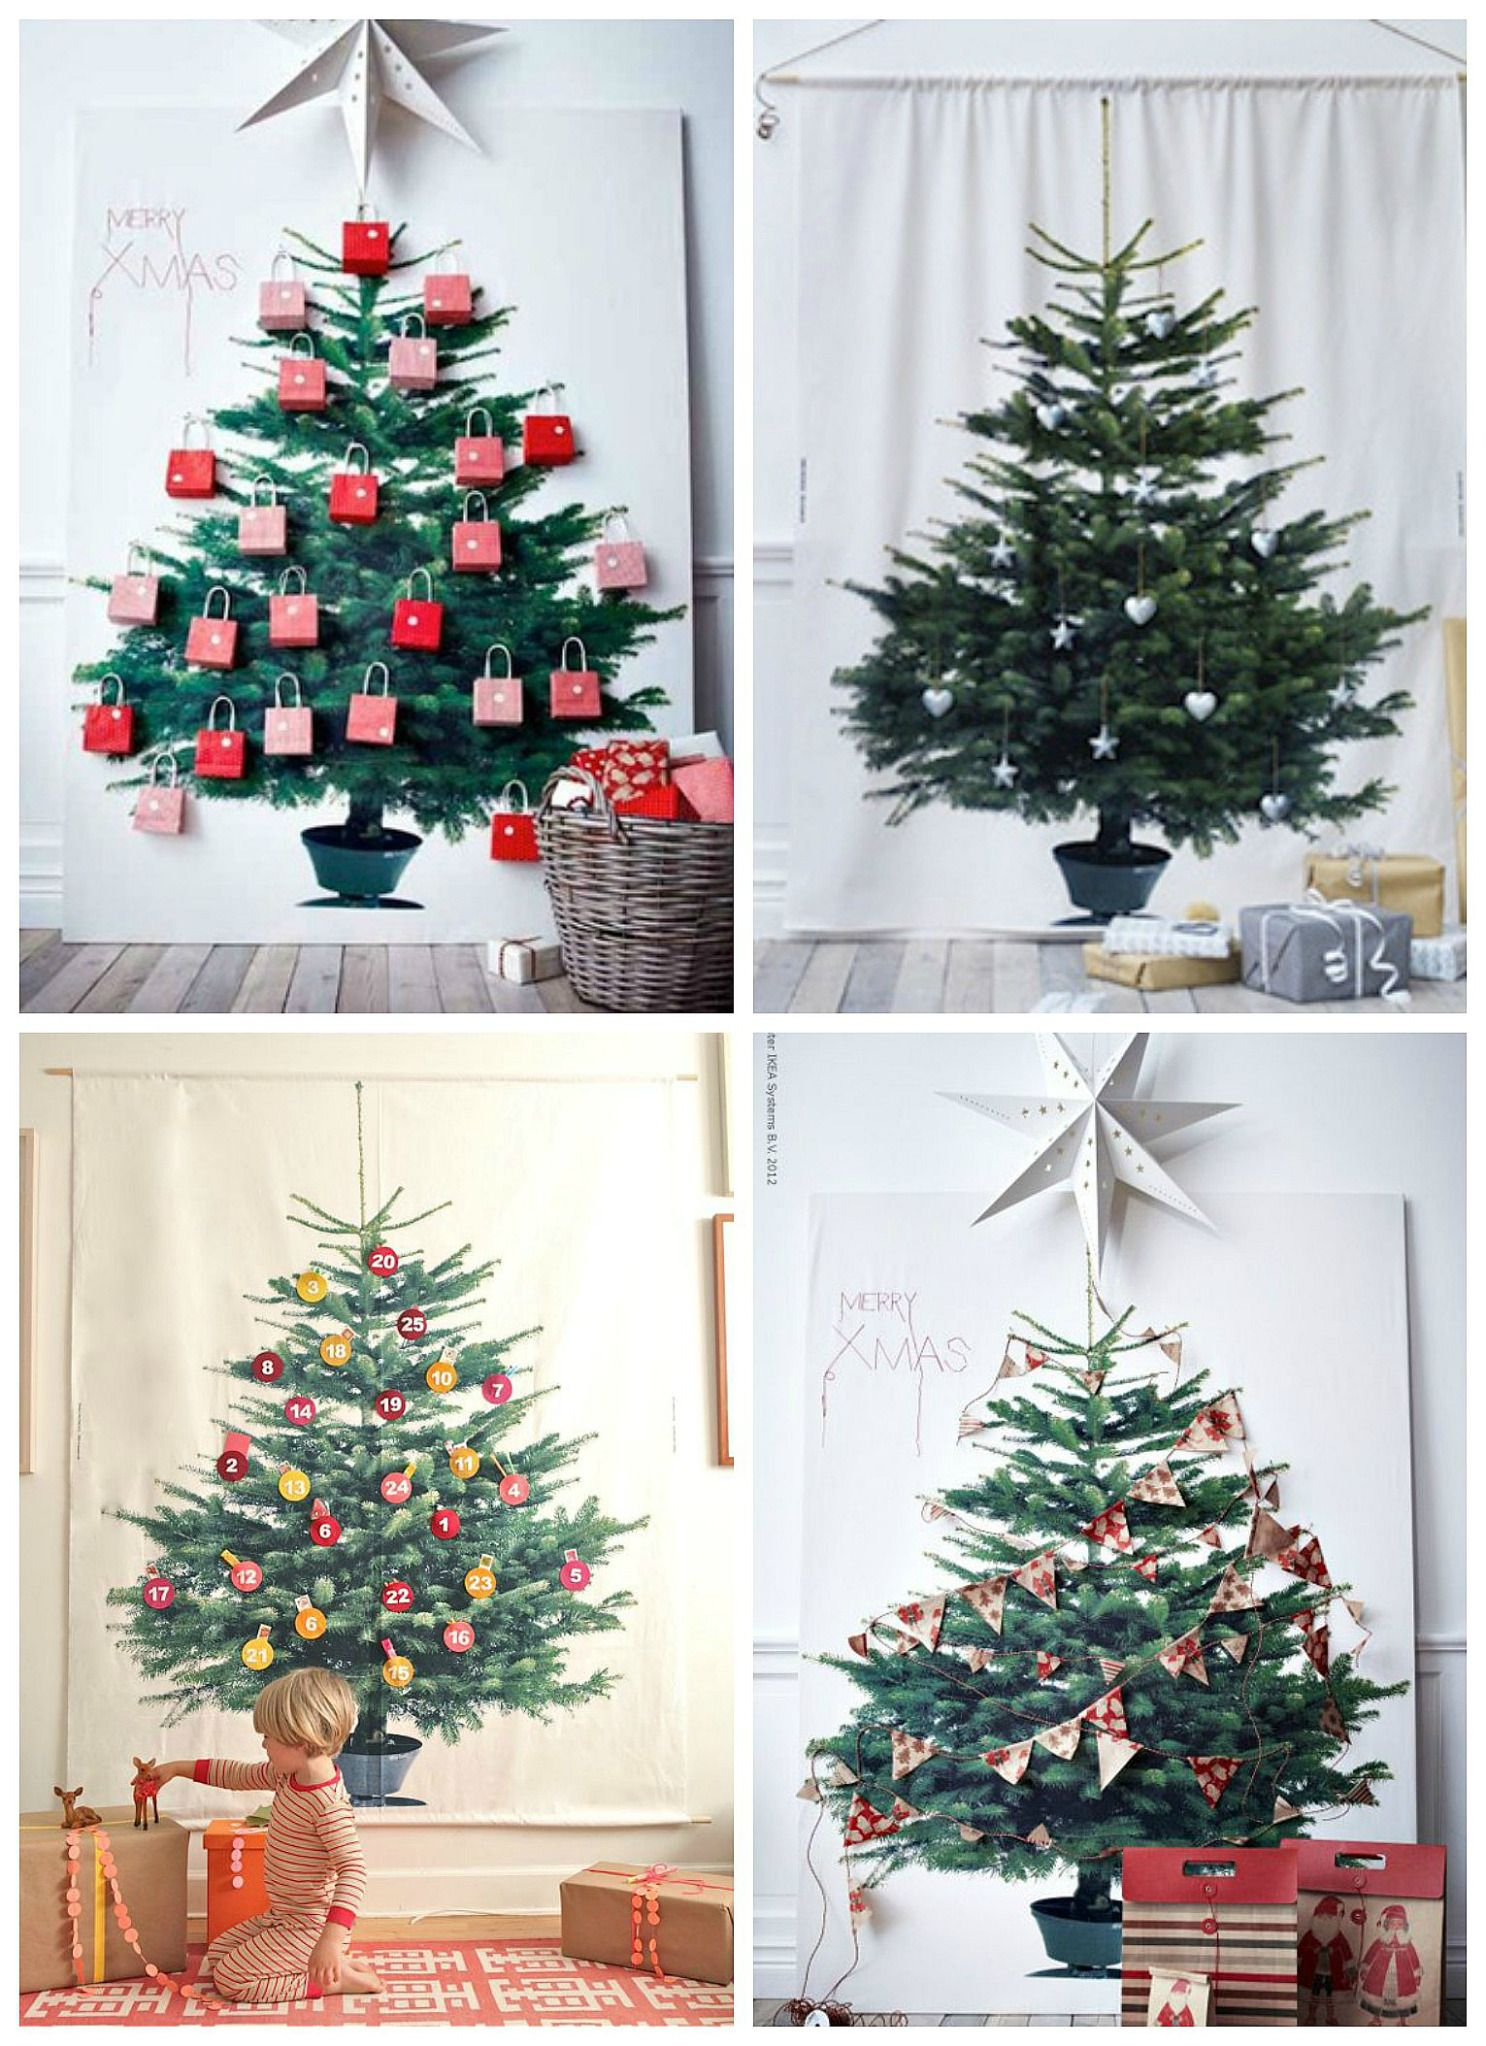 Fabric Christmas Tree | Crafts | Pinterest | Fabric christmas trees ...